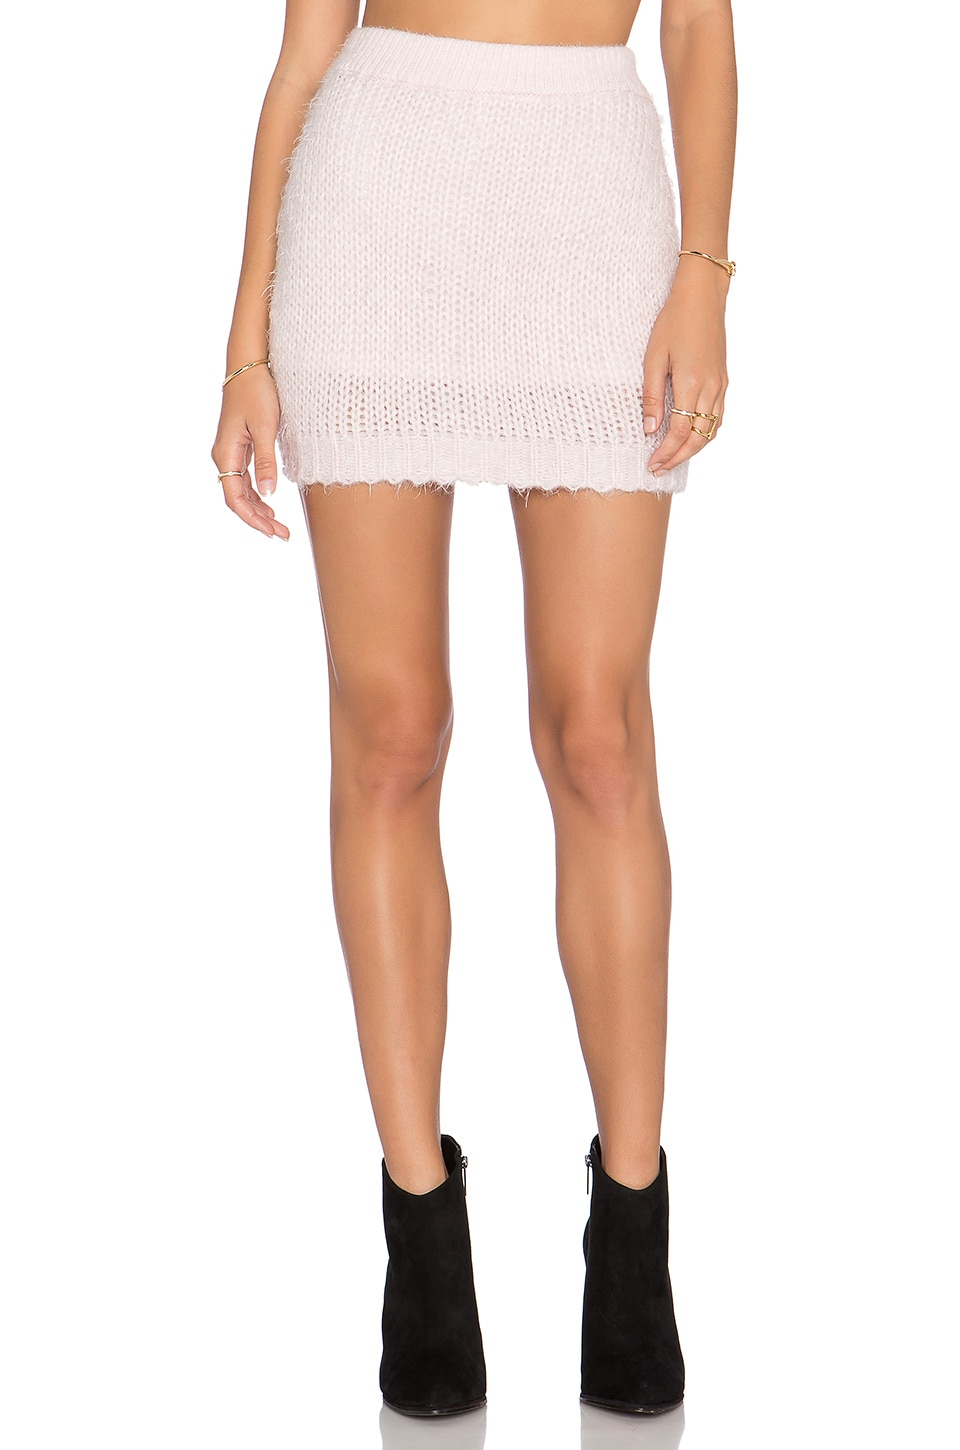 ASILIO The Pink Slipper Skirt in Ice Pink